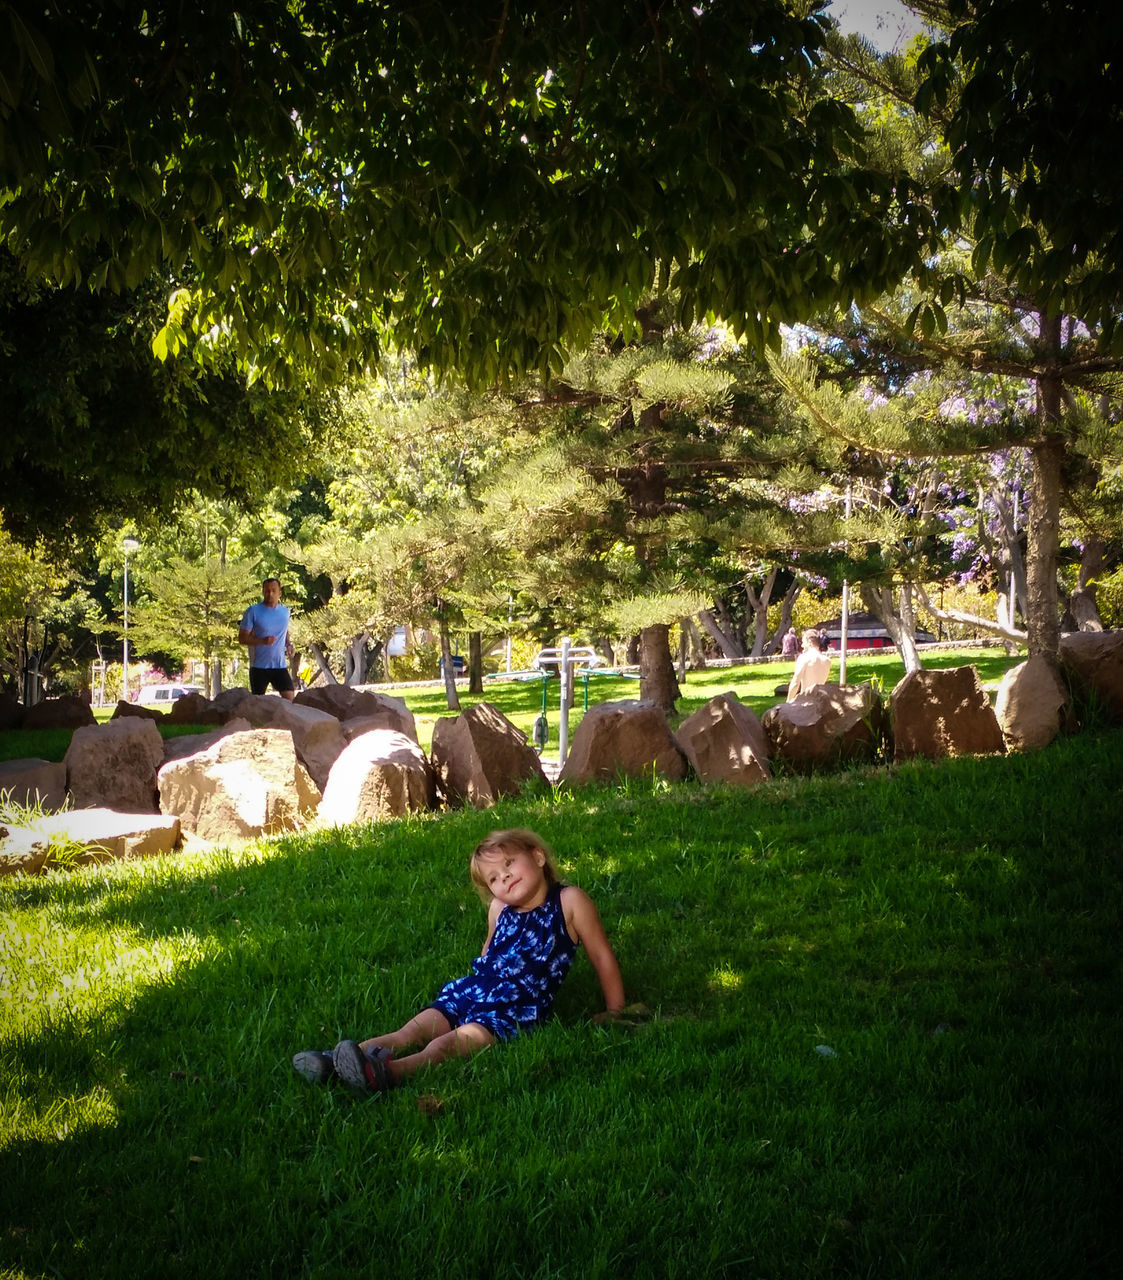 grass, animal themes, real people, tree, sitting, day, outdoors, one person, field, childhood, full length, livestock, domestic animals, mammal, nature, large group of animals, sheep, blond hair, young adult, people